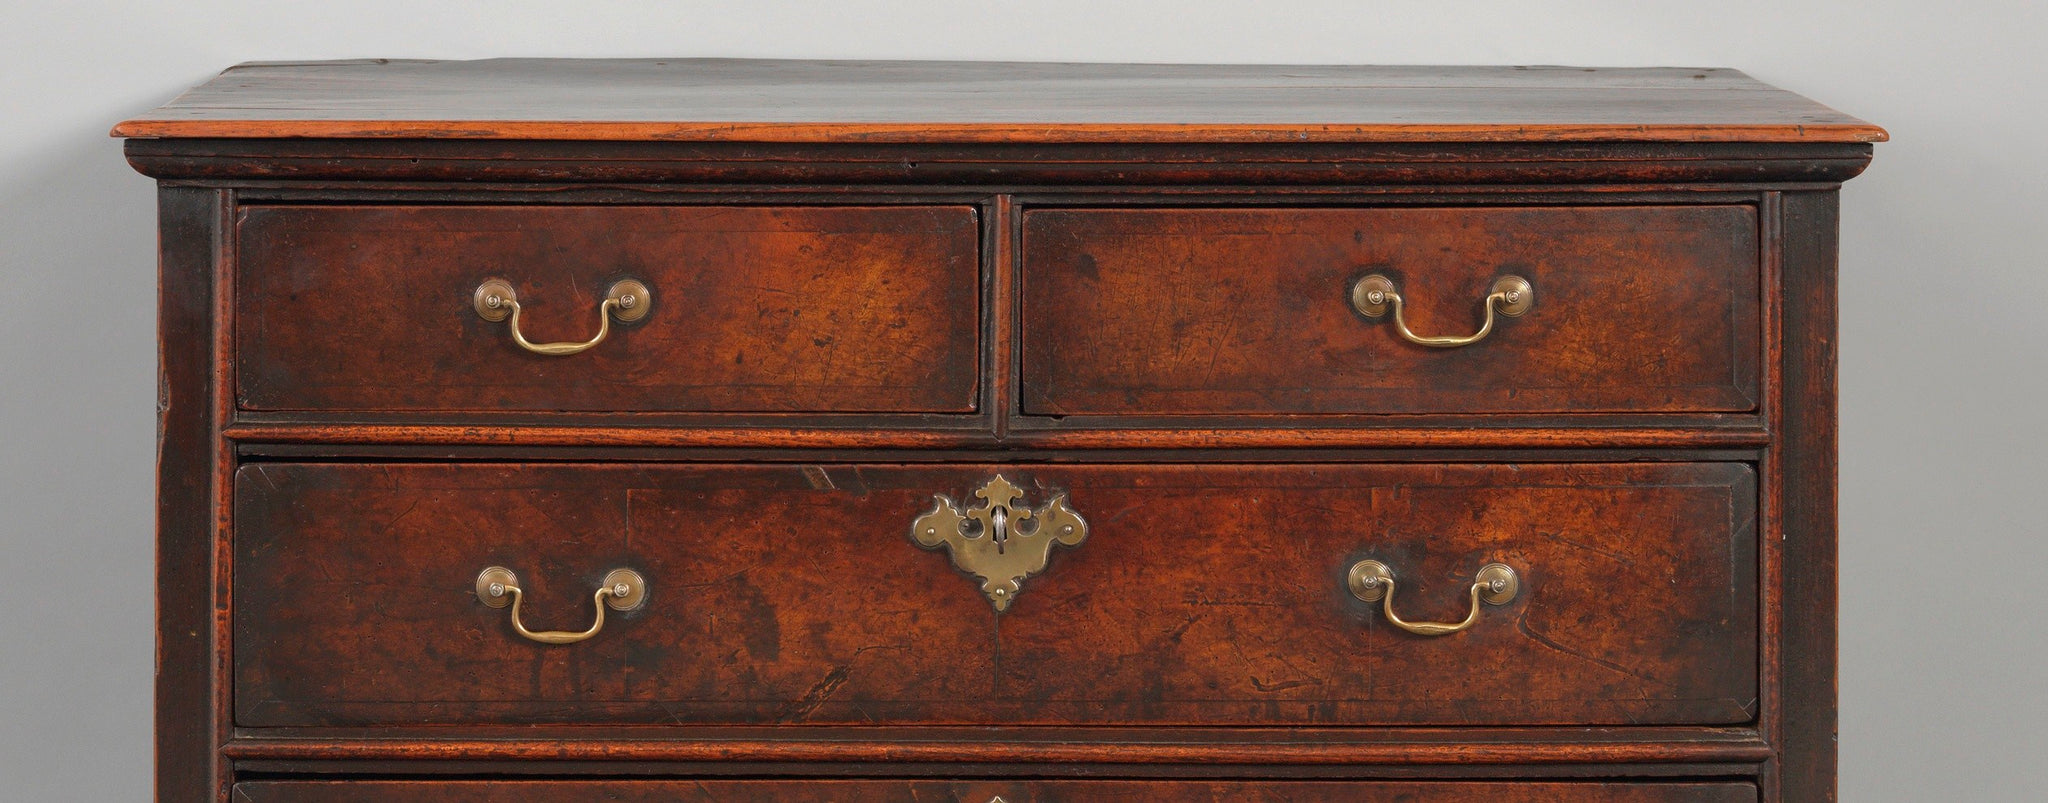 Unusual and Delightful Small Early Provincial Chest of Drawers